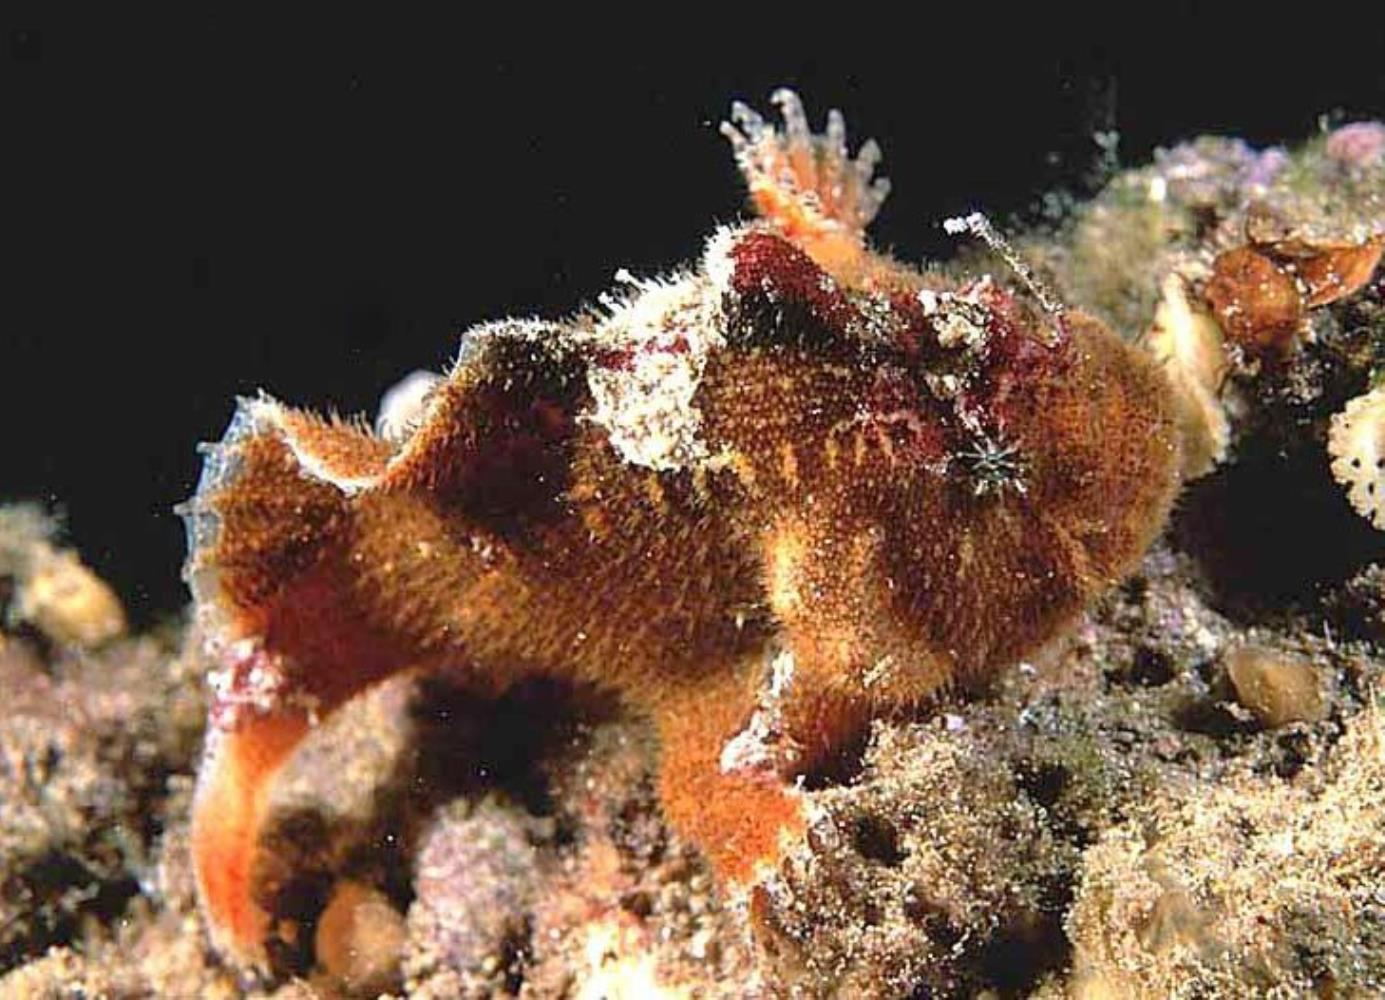 Prickly Frogfish